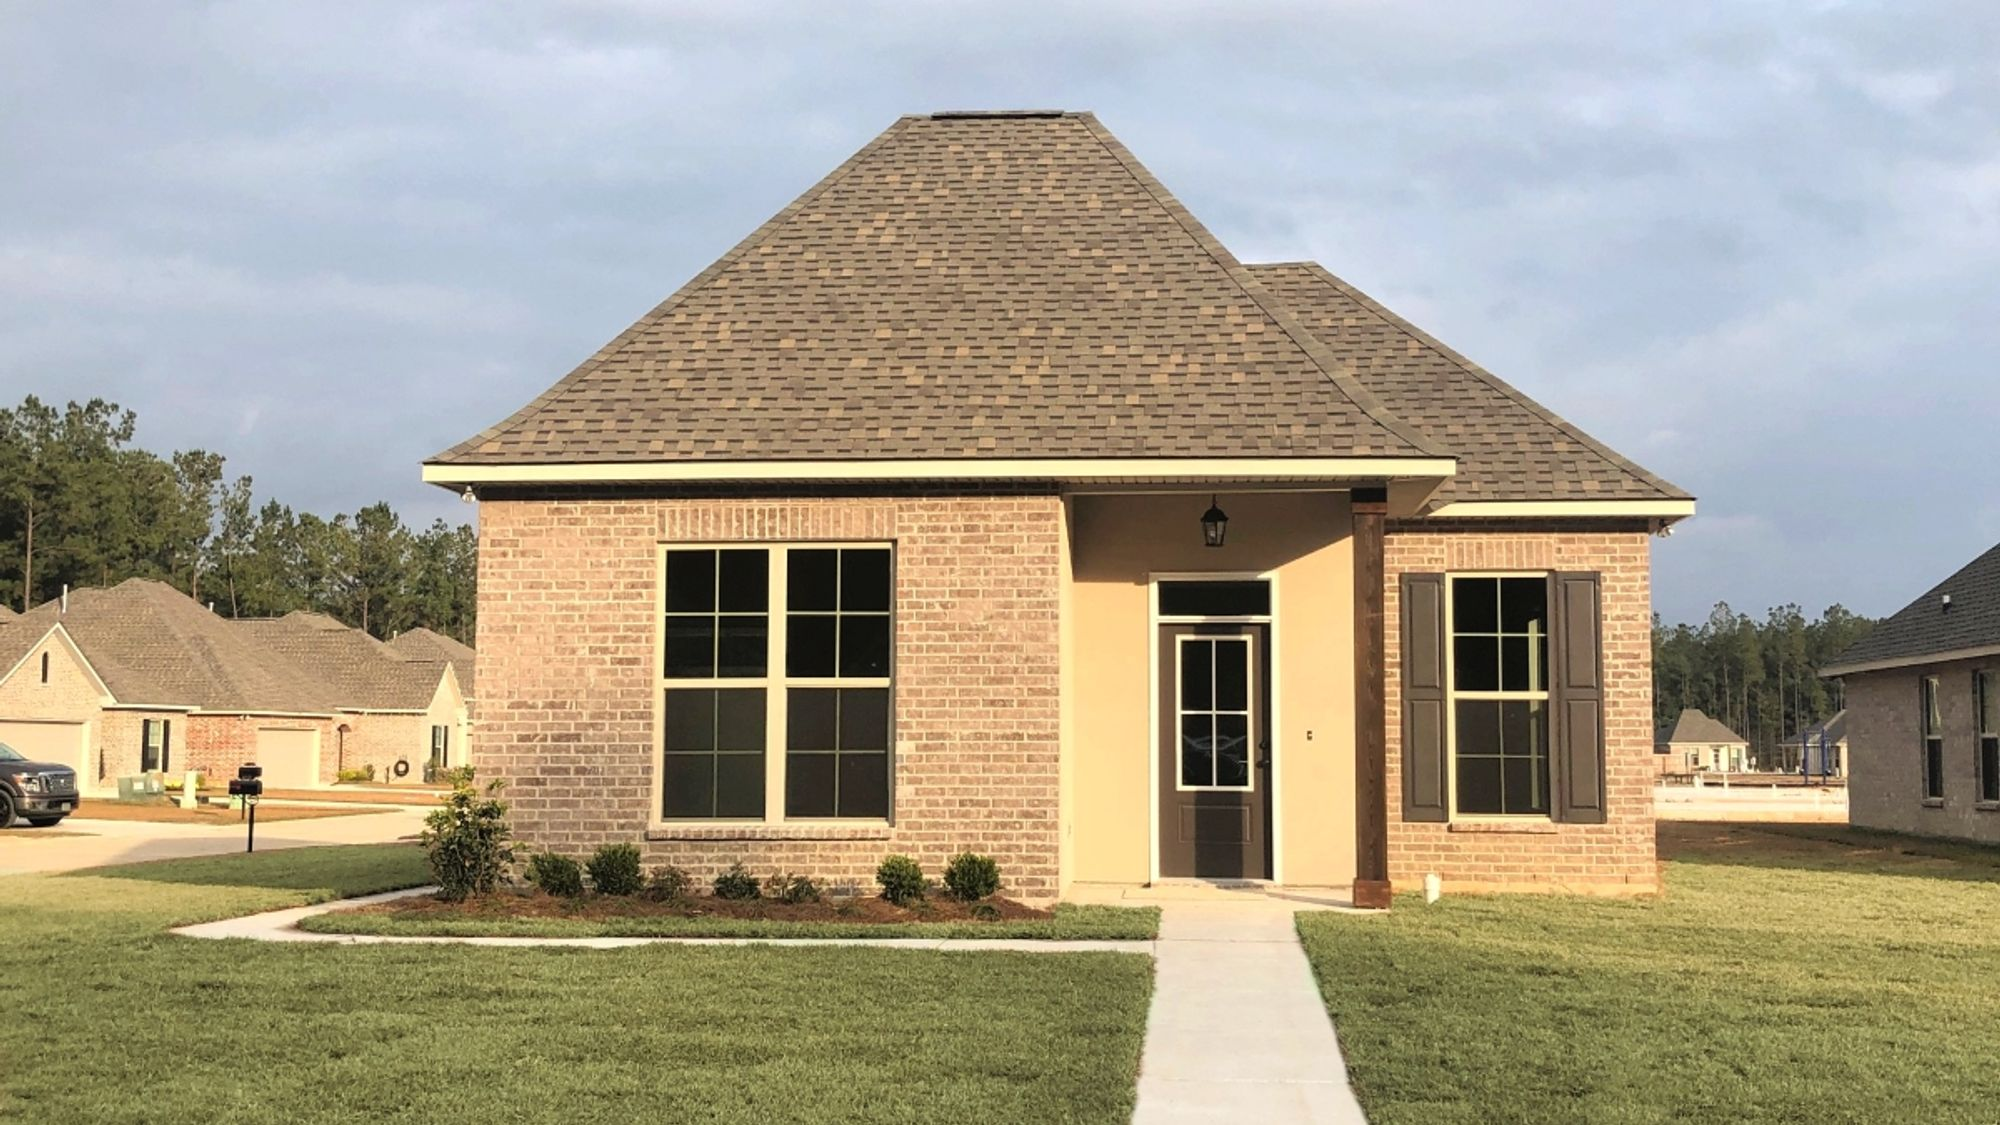 Front View - Greys II A - Goodbee Square Community - DSLD Homes - Covington